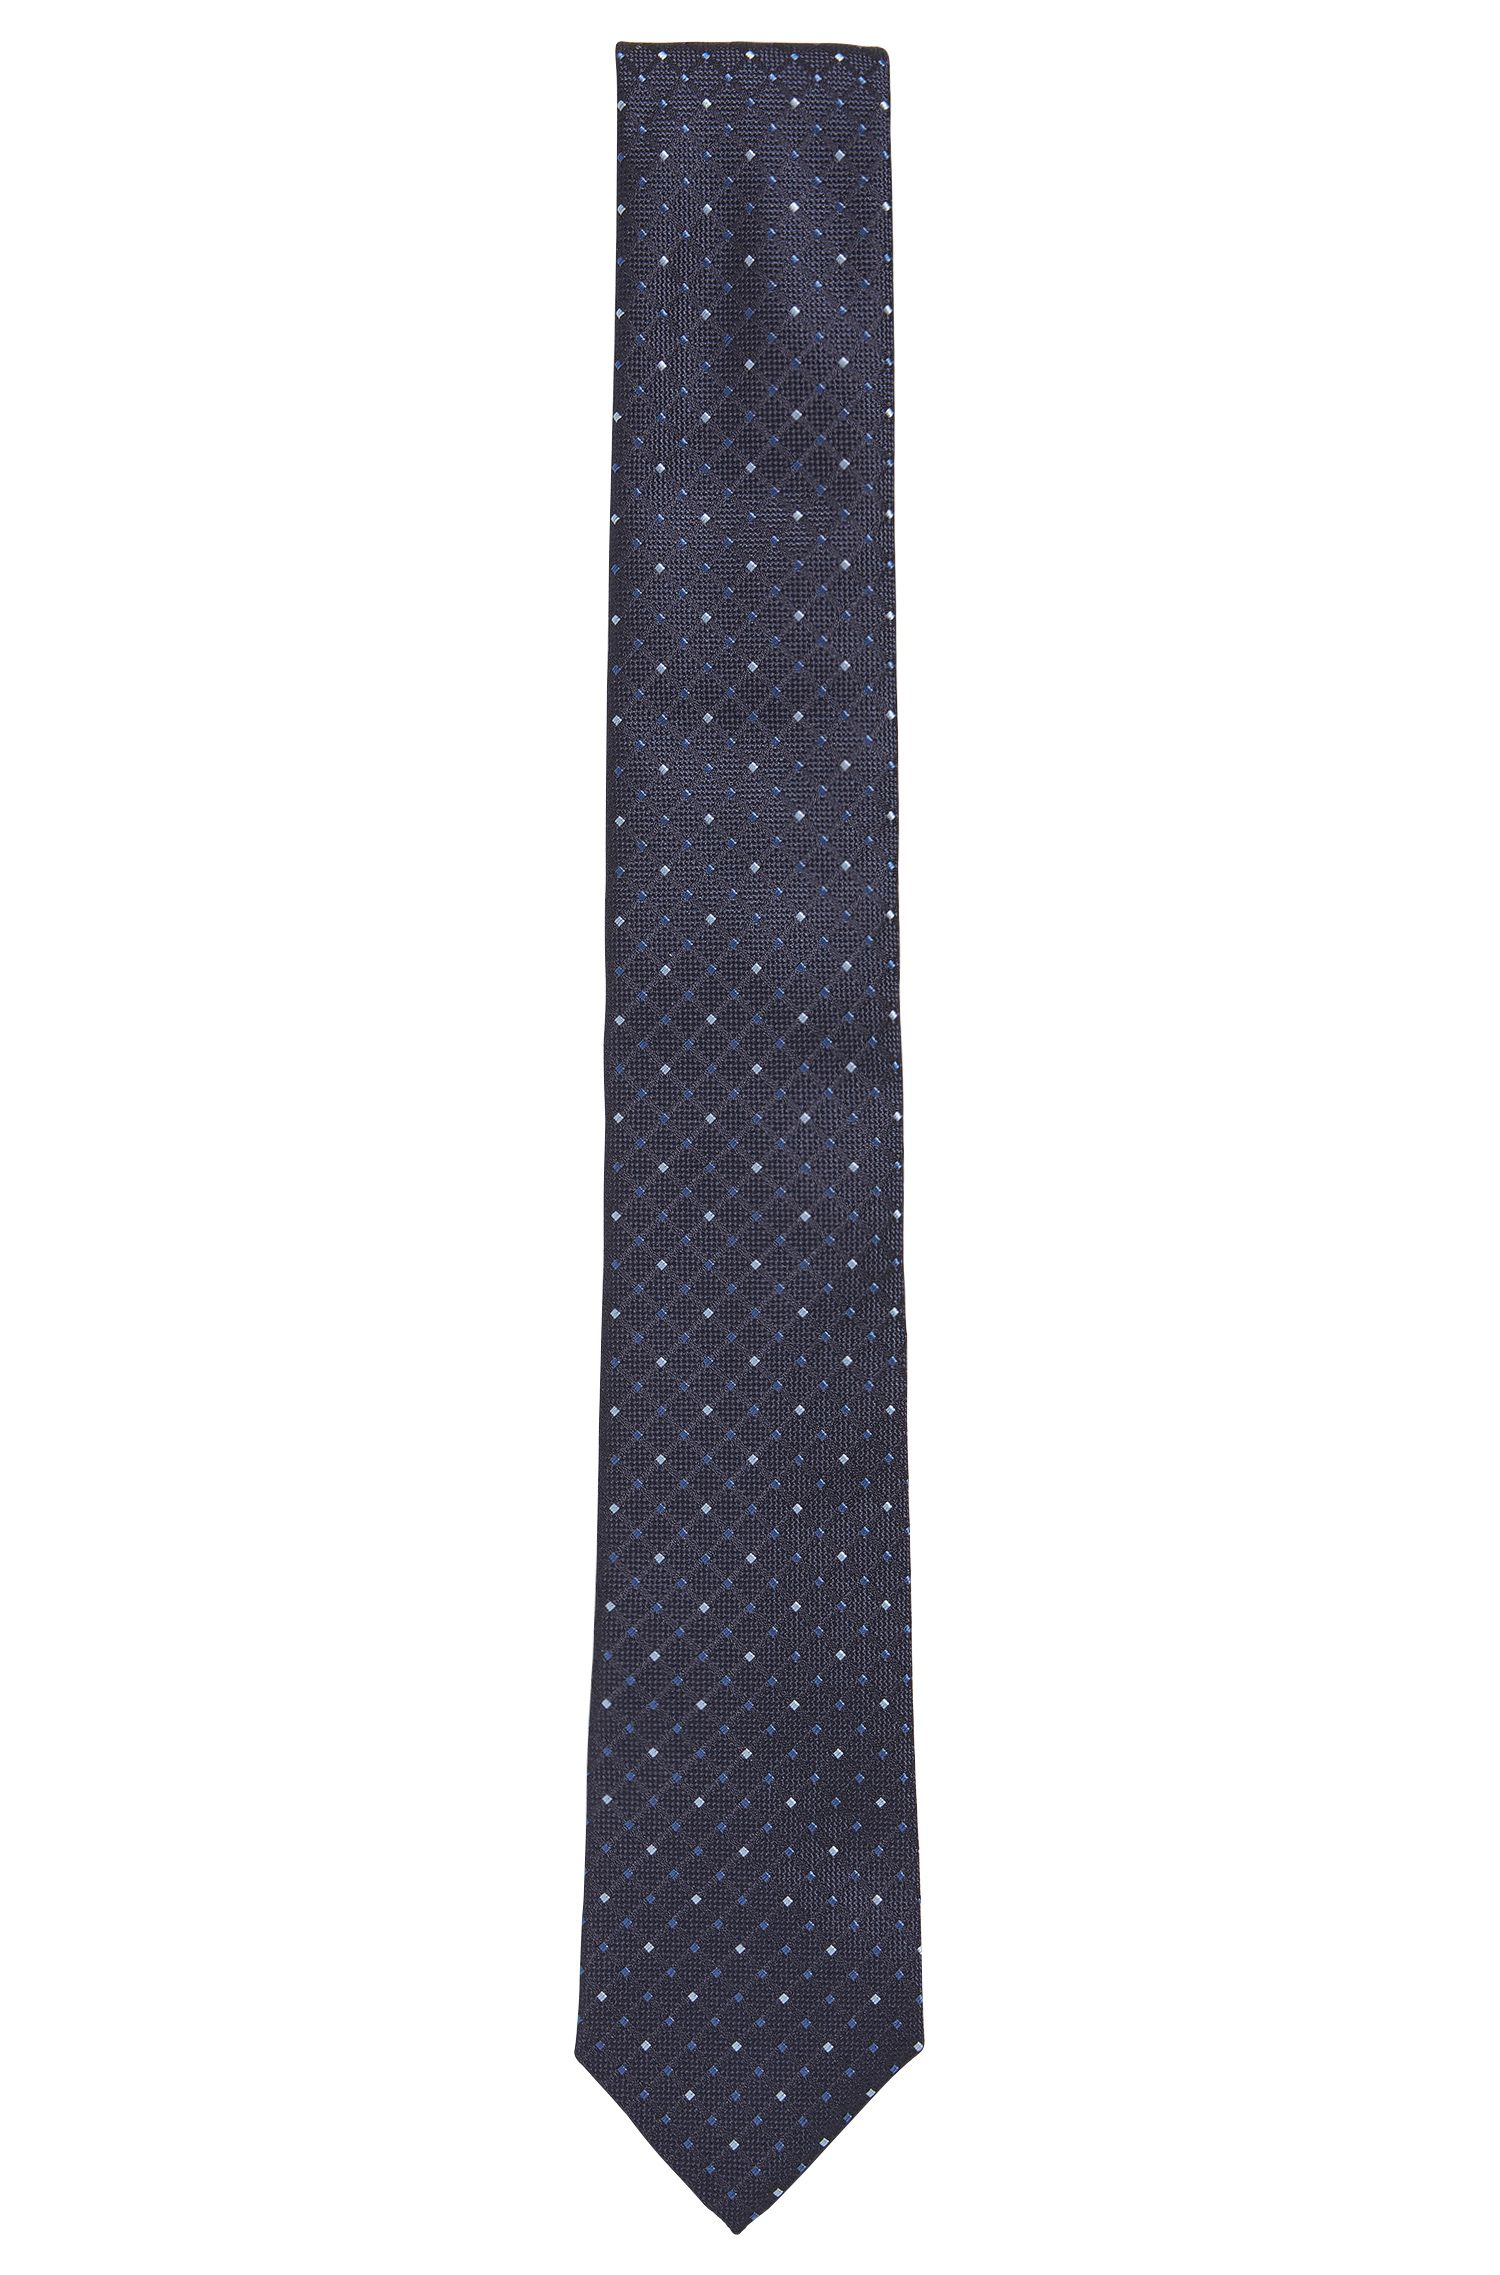 BOSS Tailored Diamond Jacquard Silk Slim Tie, Dark Blue